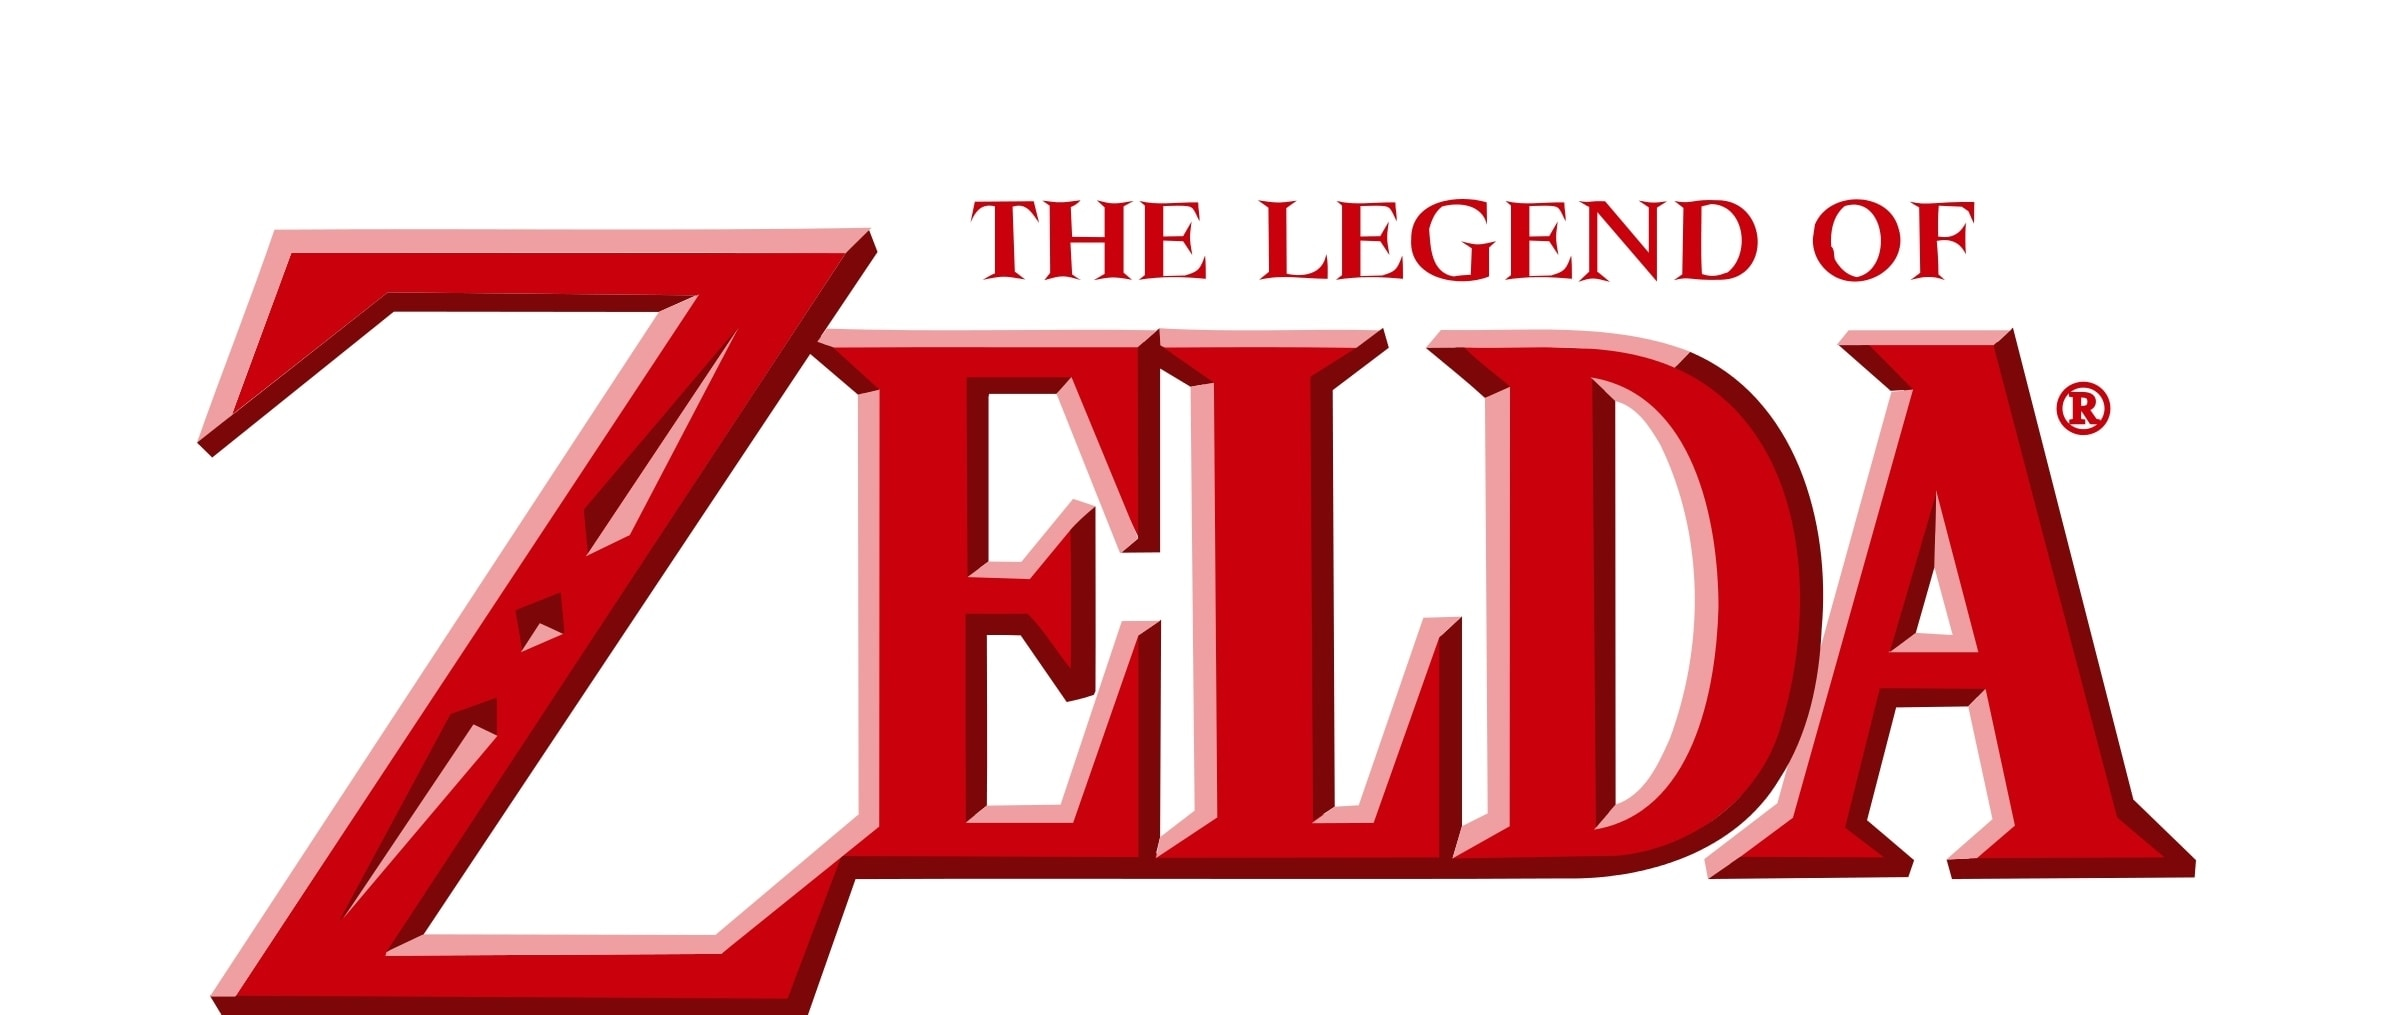 The Legend of Zelda promo codes